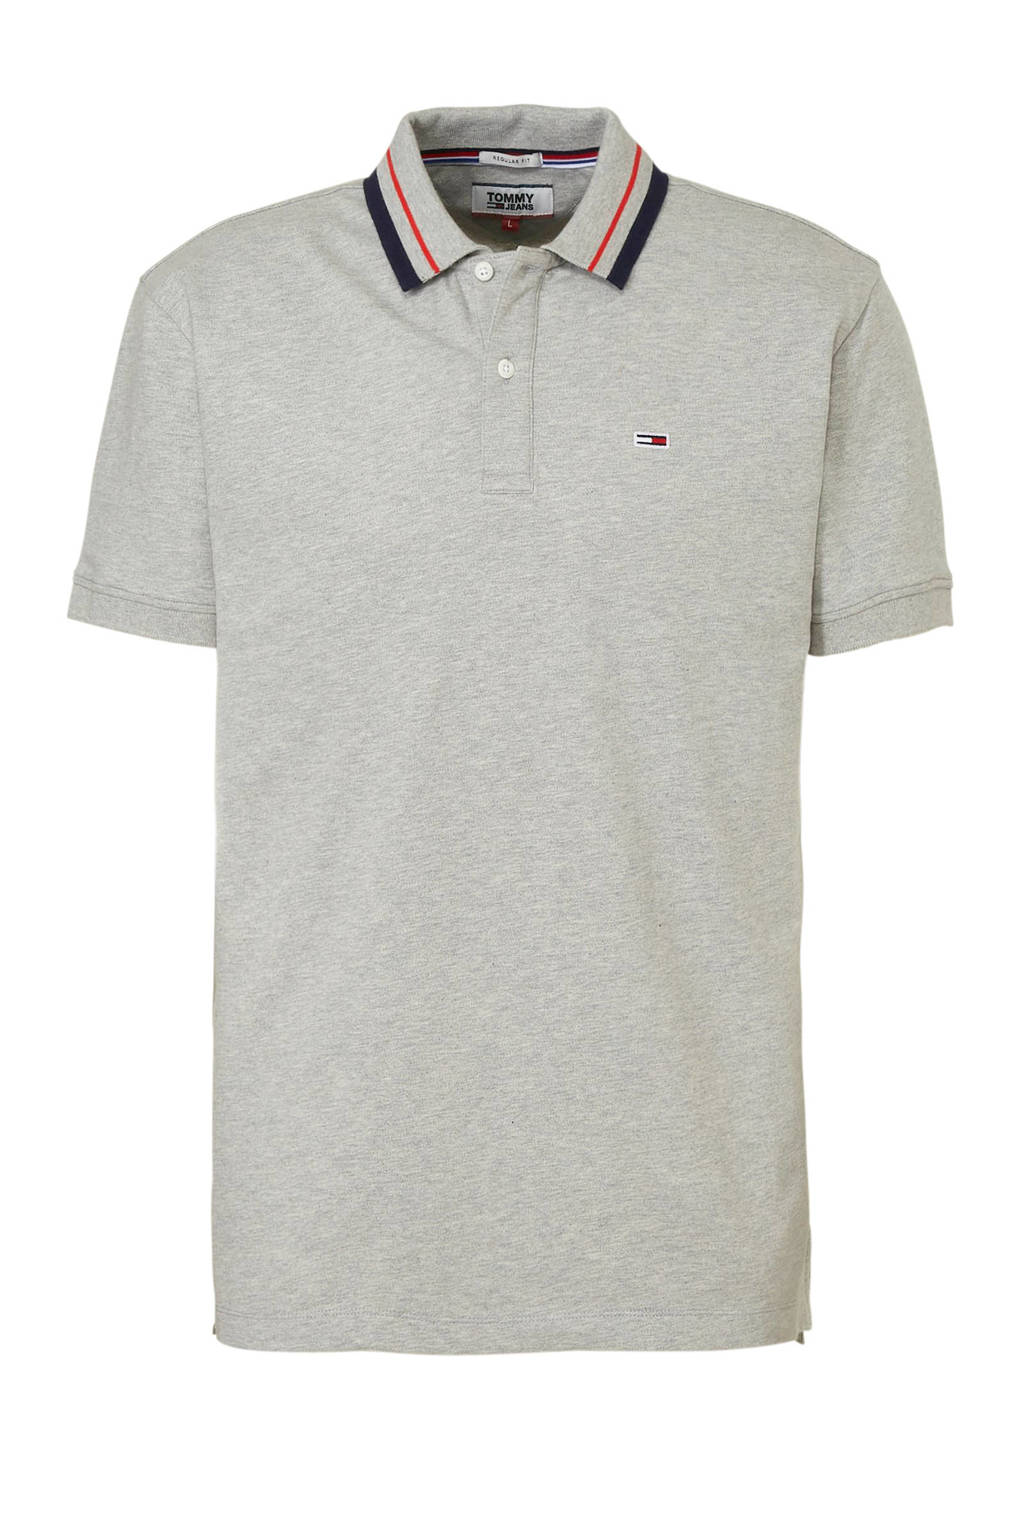 Tommy Jeans polo grijs, Grijs/ Rood/ Marine